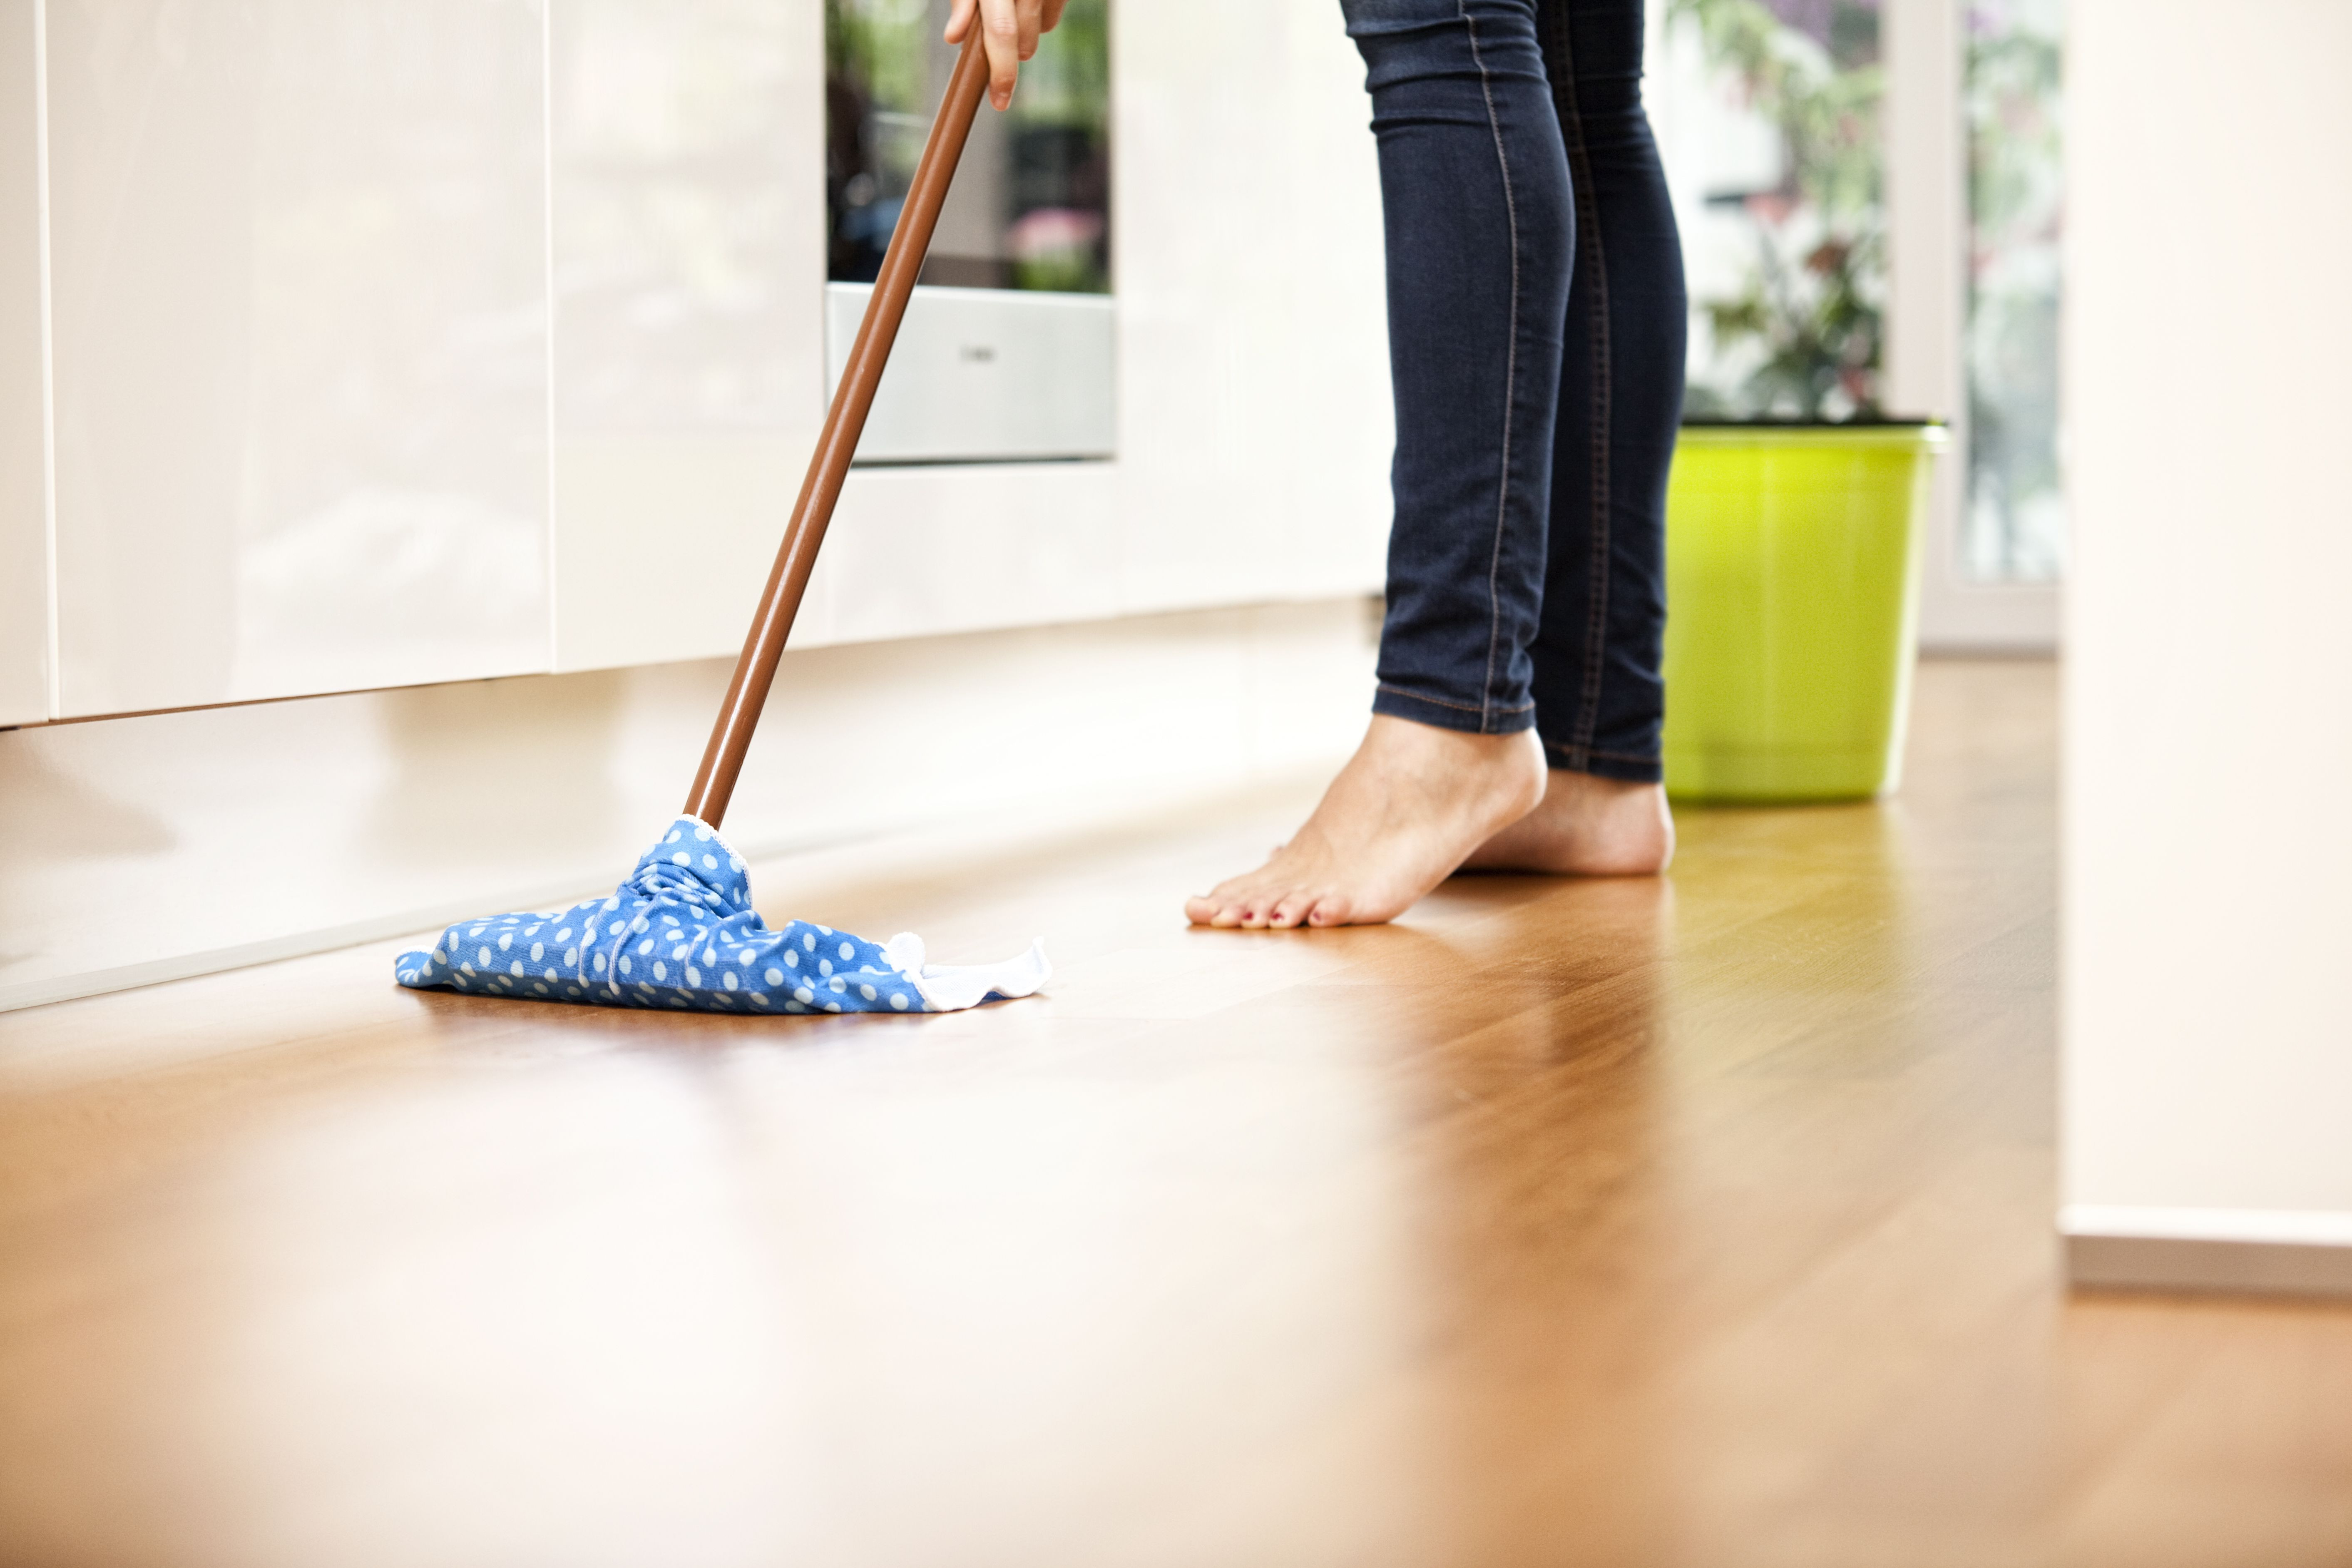 hardwood floor supply store of the right cleaners for your solid hardwood flooring intended for woman wiping the floor 588494585 585049b43df78c491ebc200a